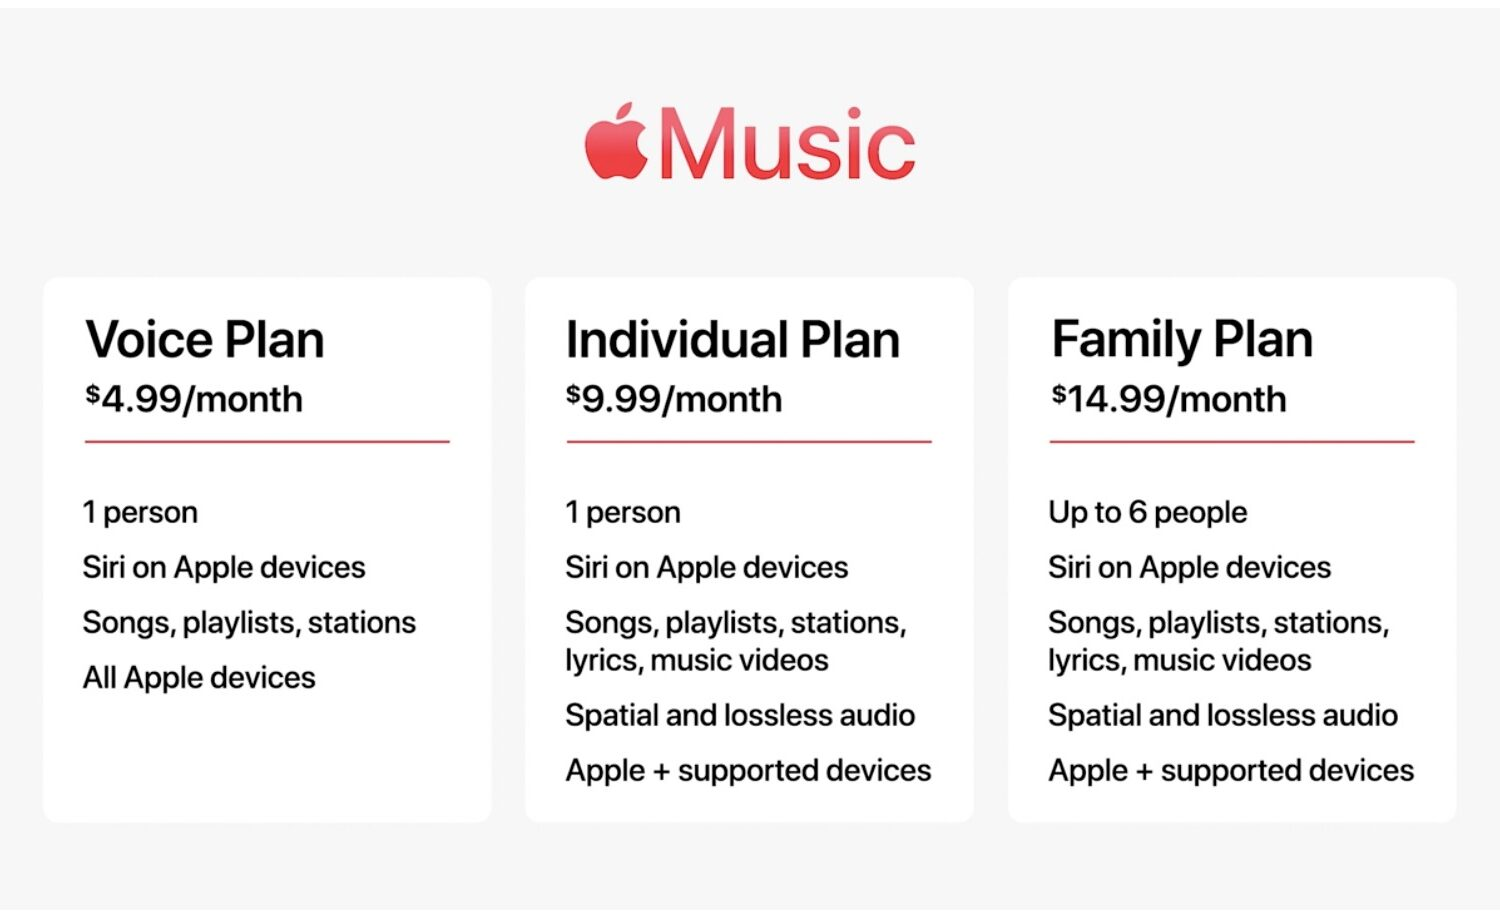 Apple's marketing image showing the Apple Music subscription plans: Voice, Individual and Family